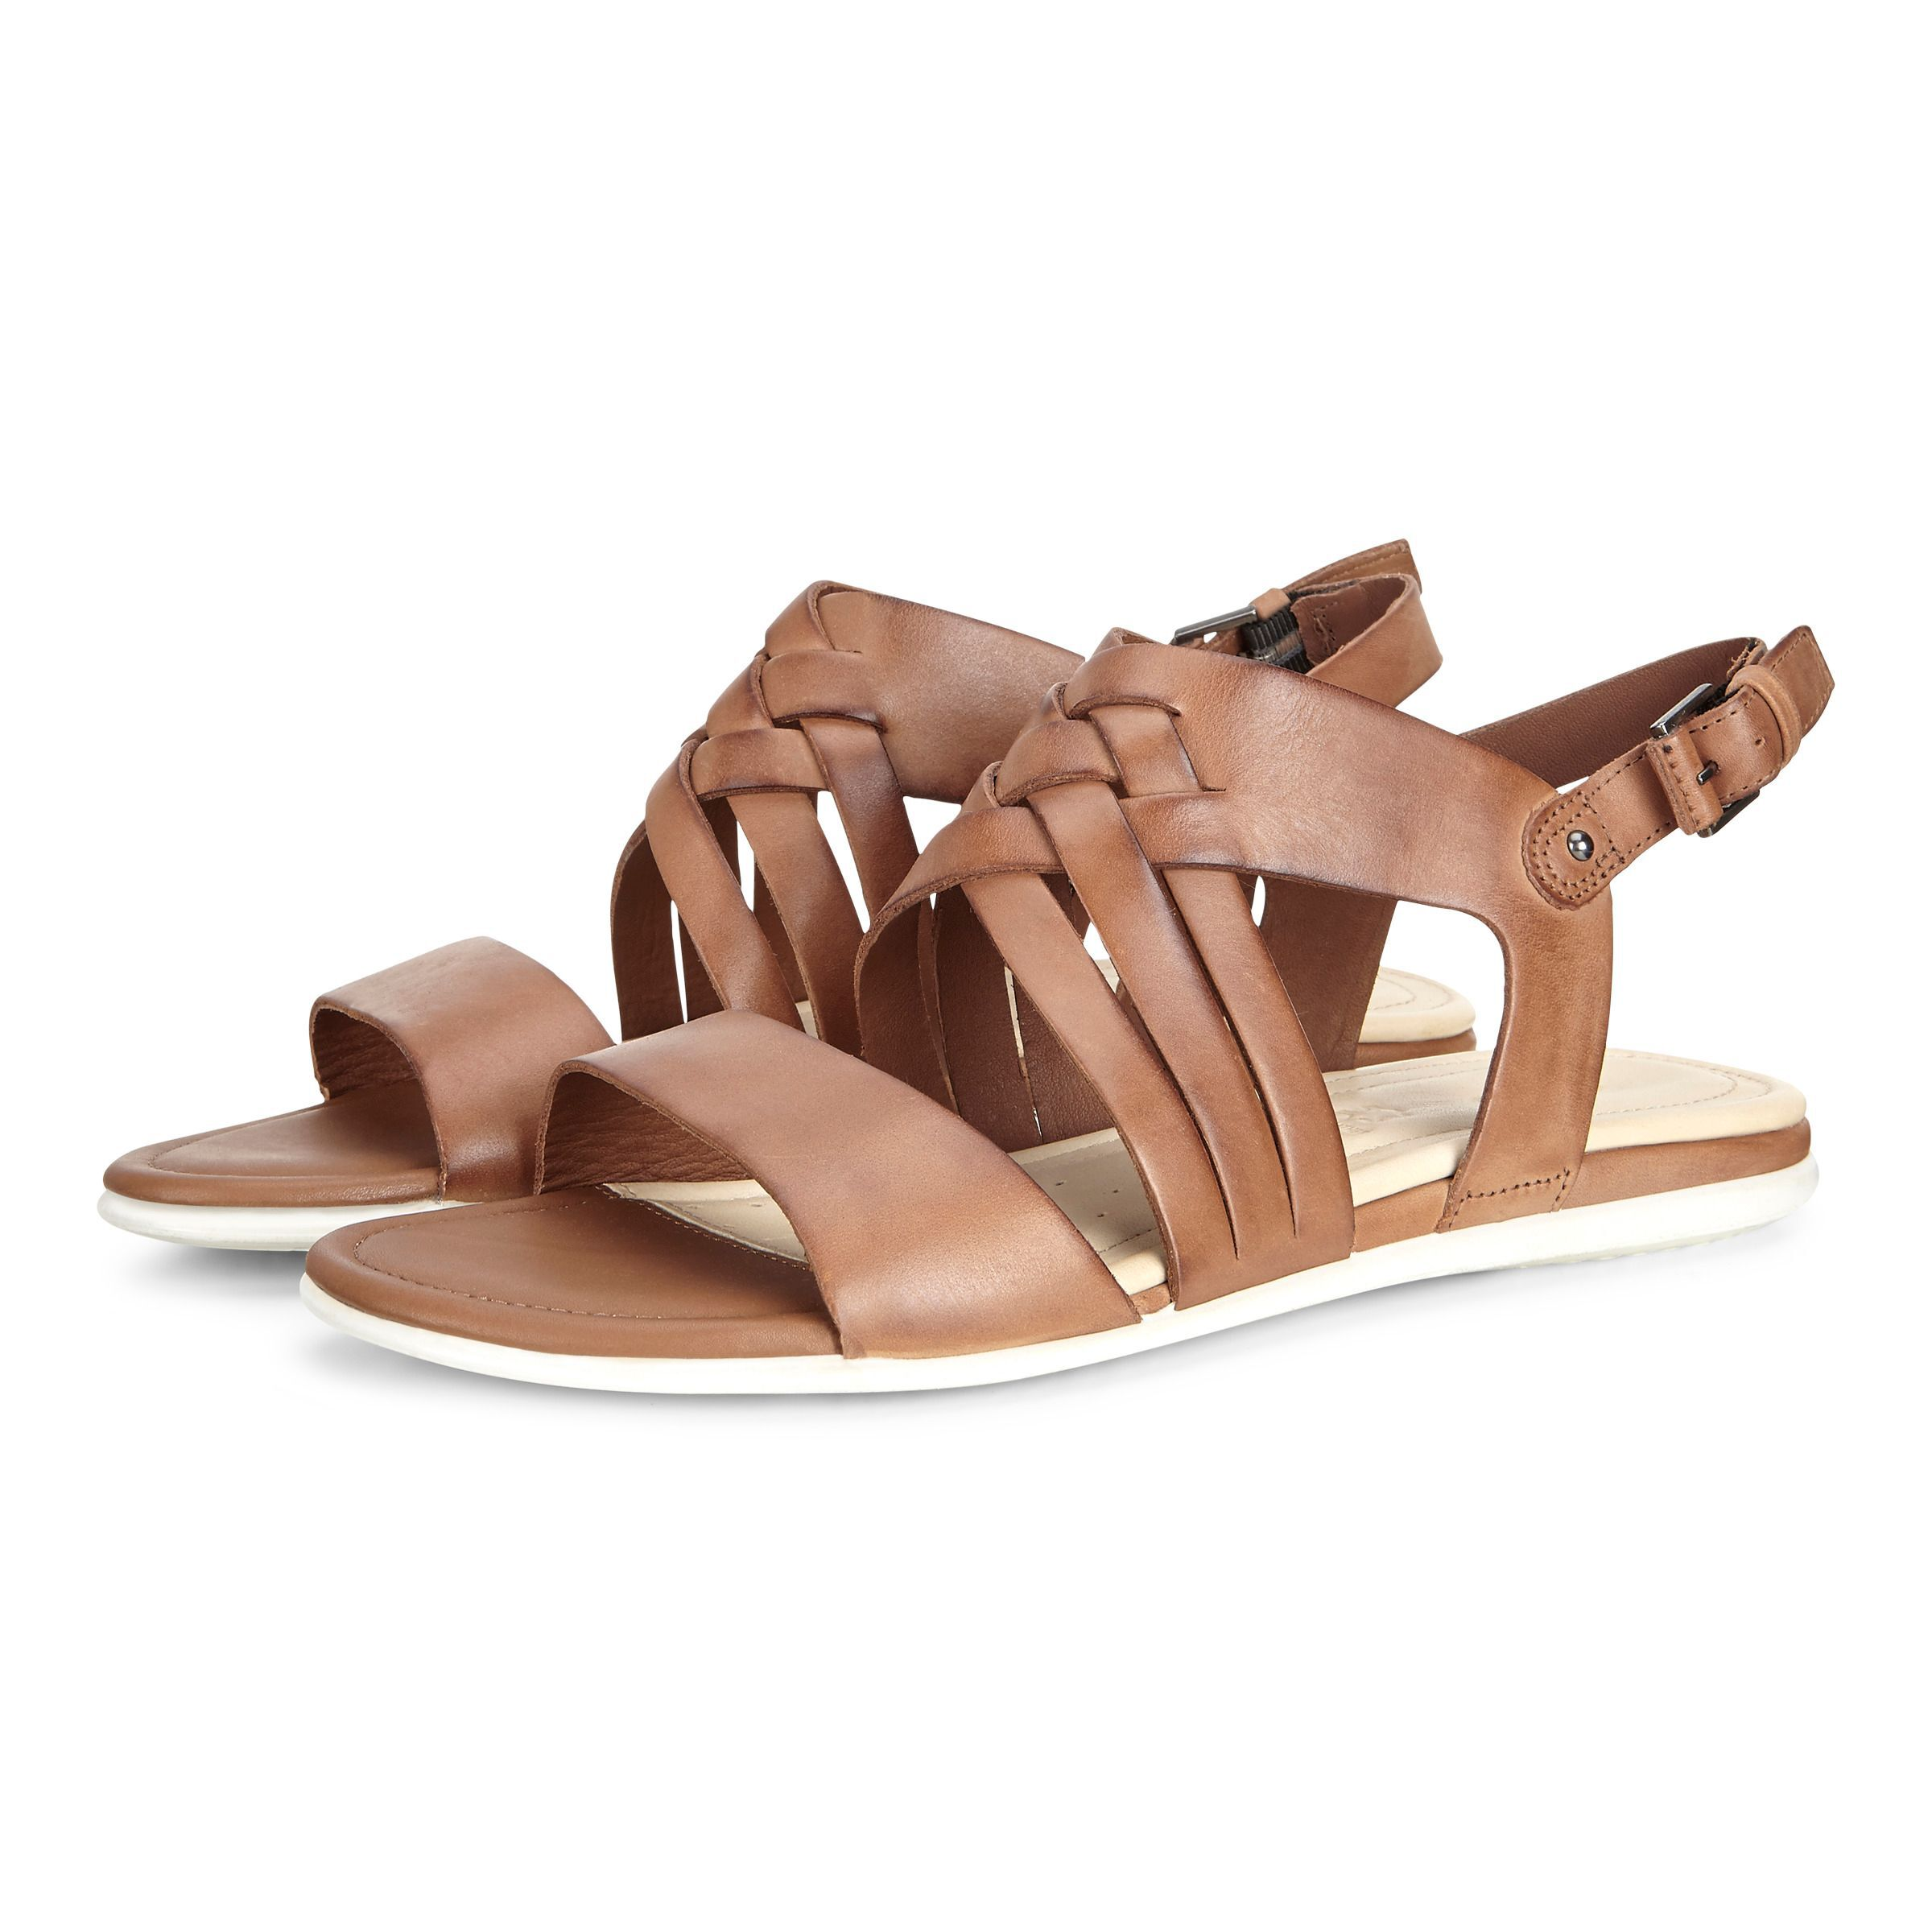 4ce0a5c4f844 ECCO Touch Braided Sandal JE24c - oasisofstlucie.com